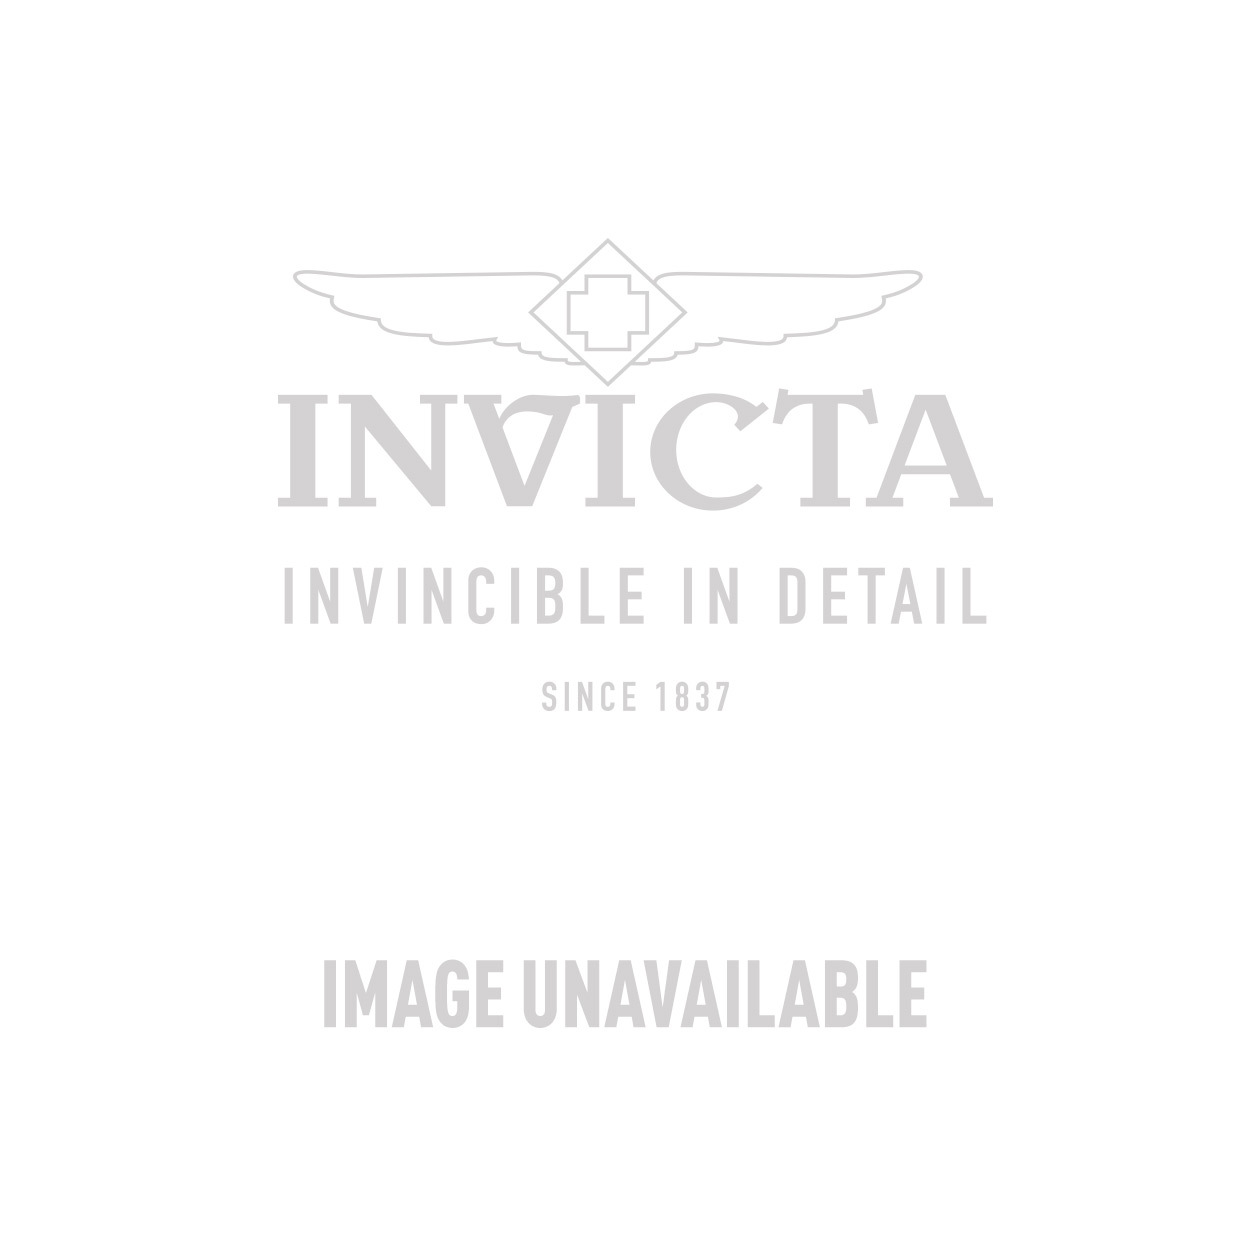 Invicta Invicta II Collection Swiss Movement Quartz Watch - Stainless Steel case Stainless Steel band - Model 0451